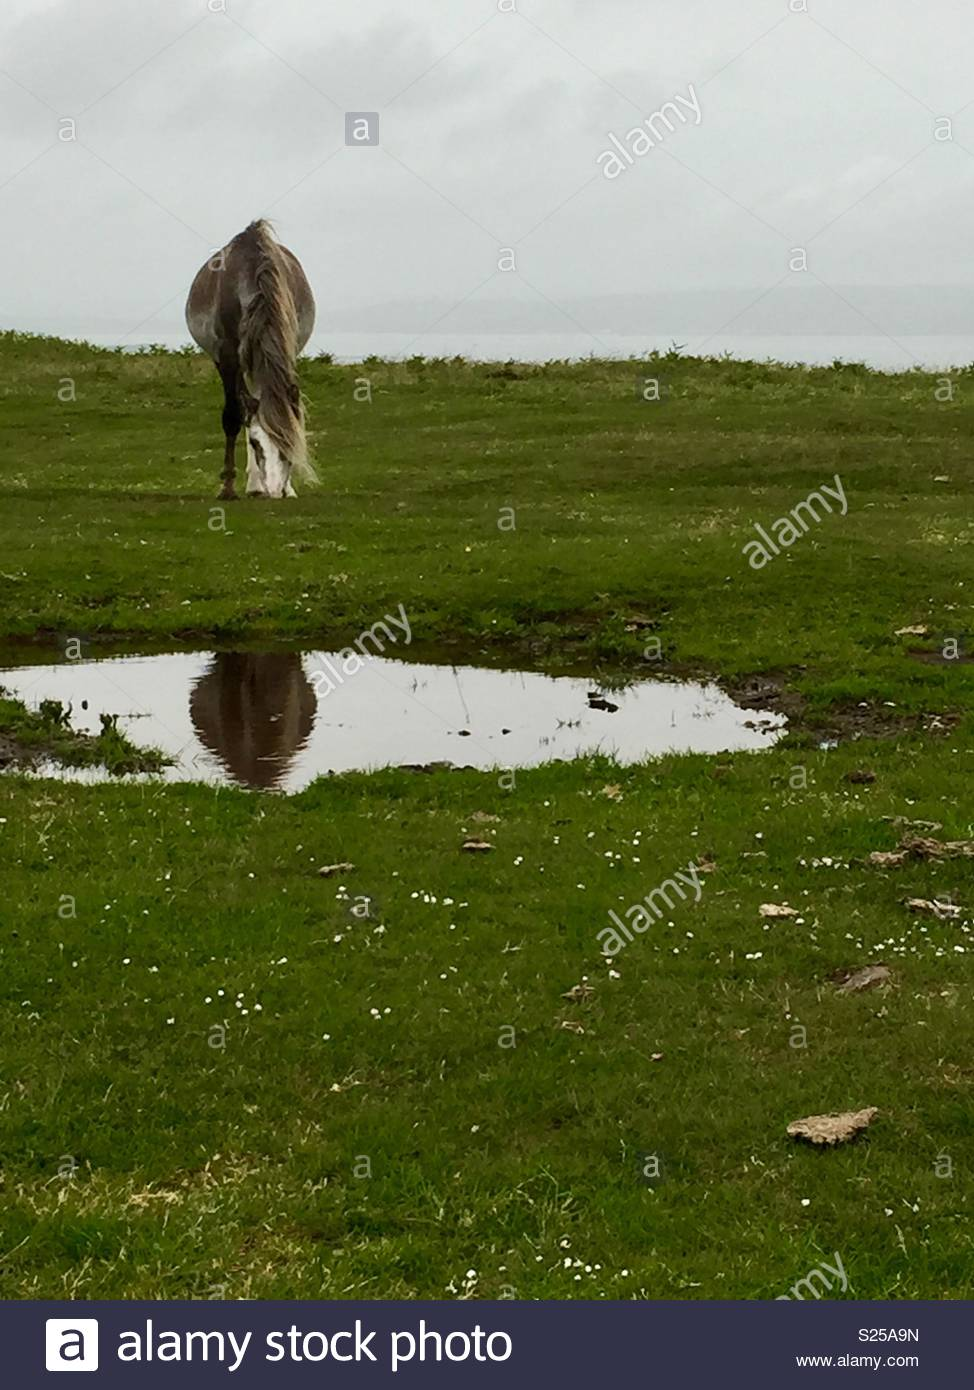 Horse reflected in water in field - Stock Image